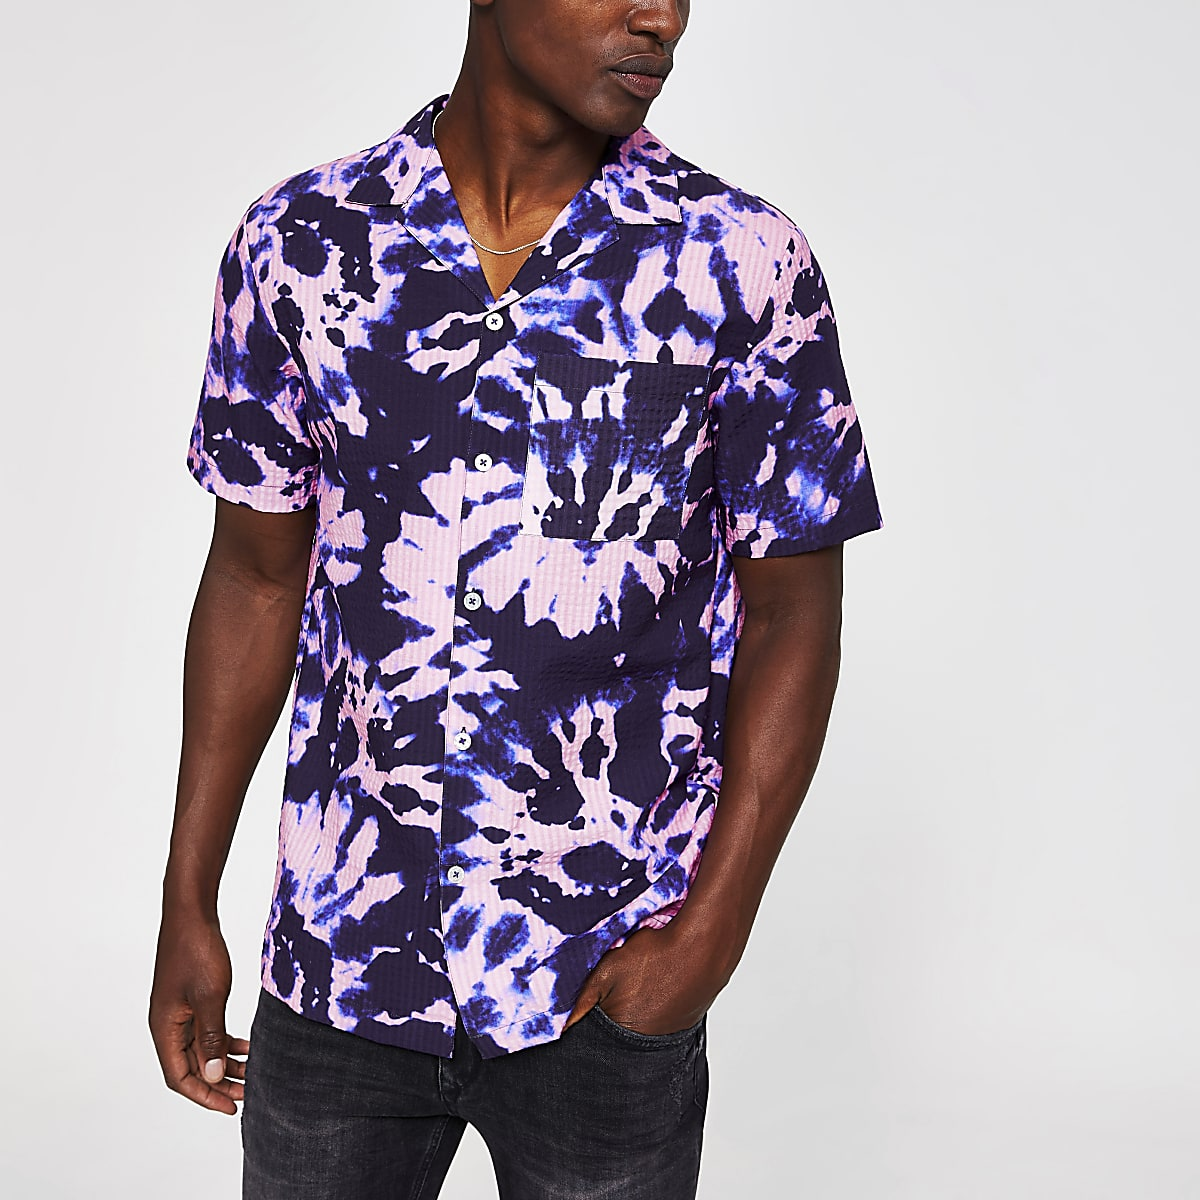 Purple tie dye short sleeve shirt